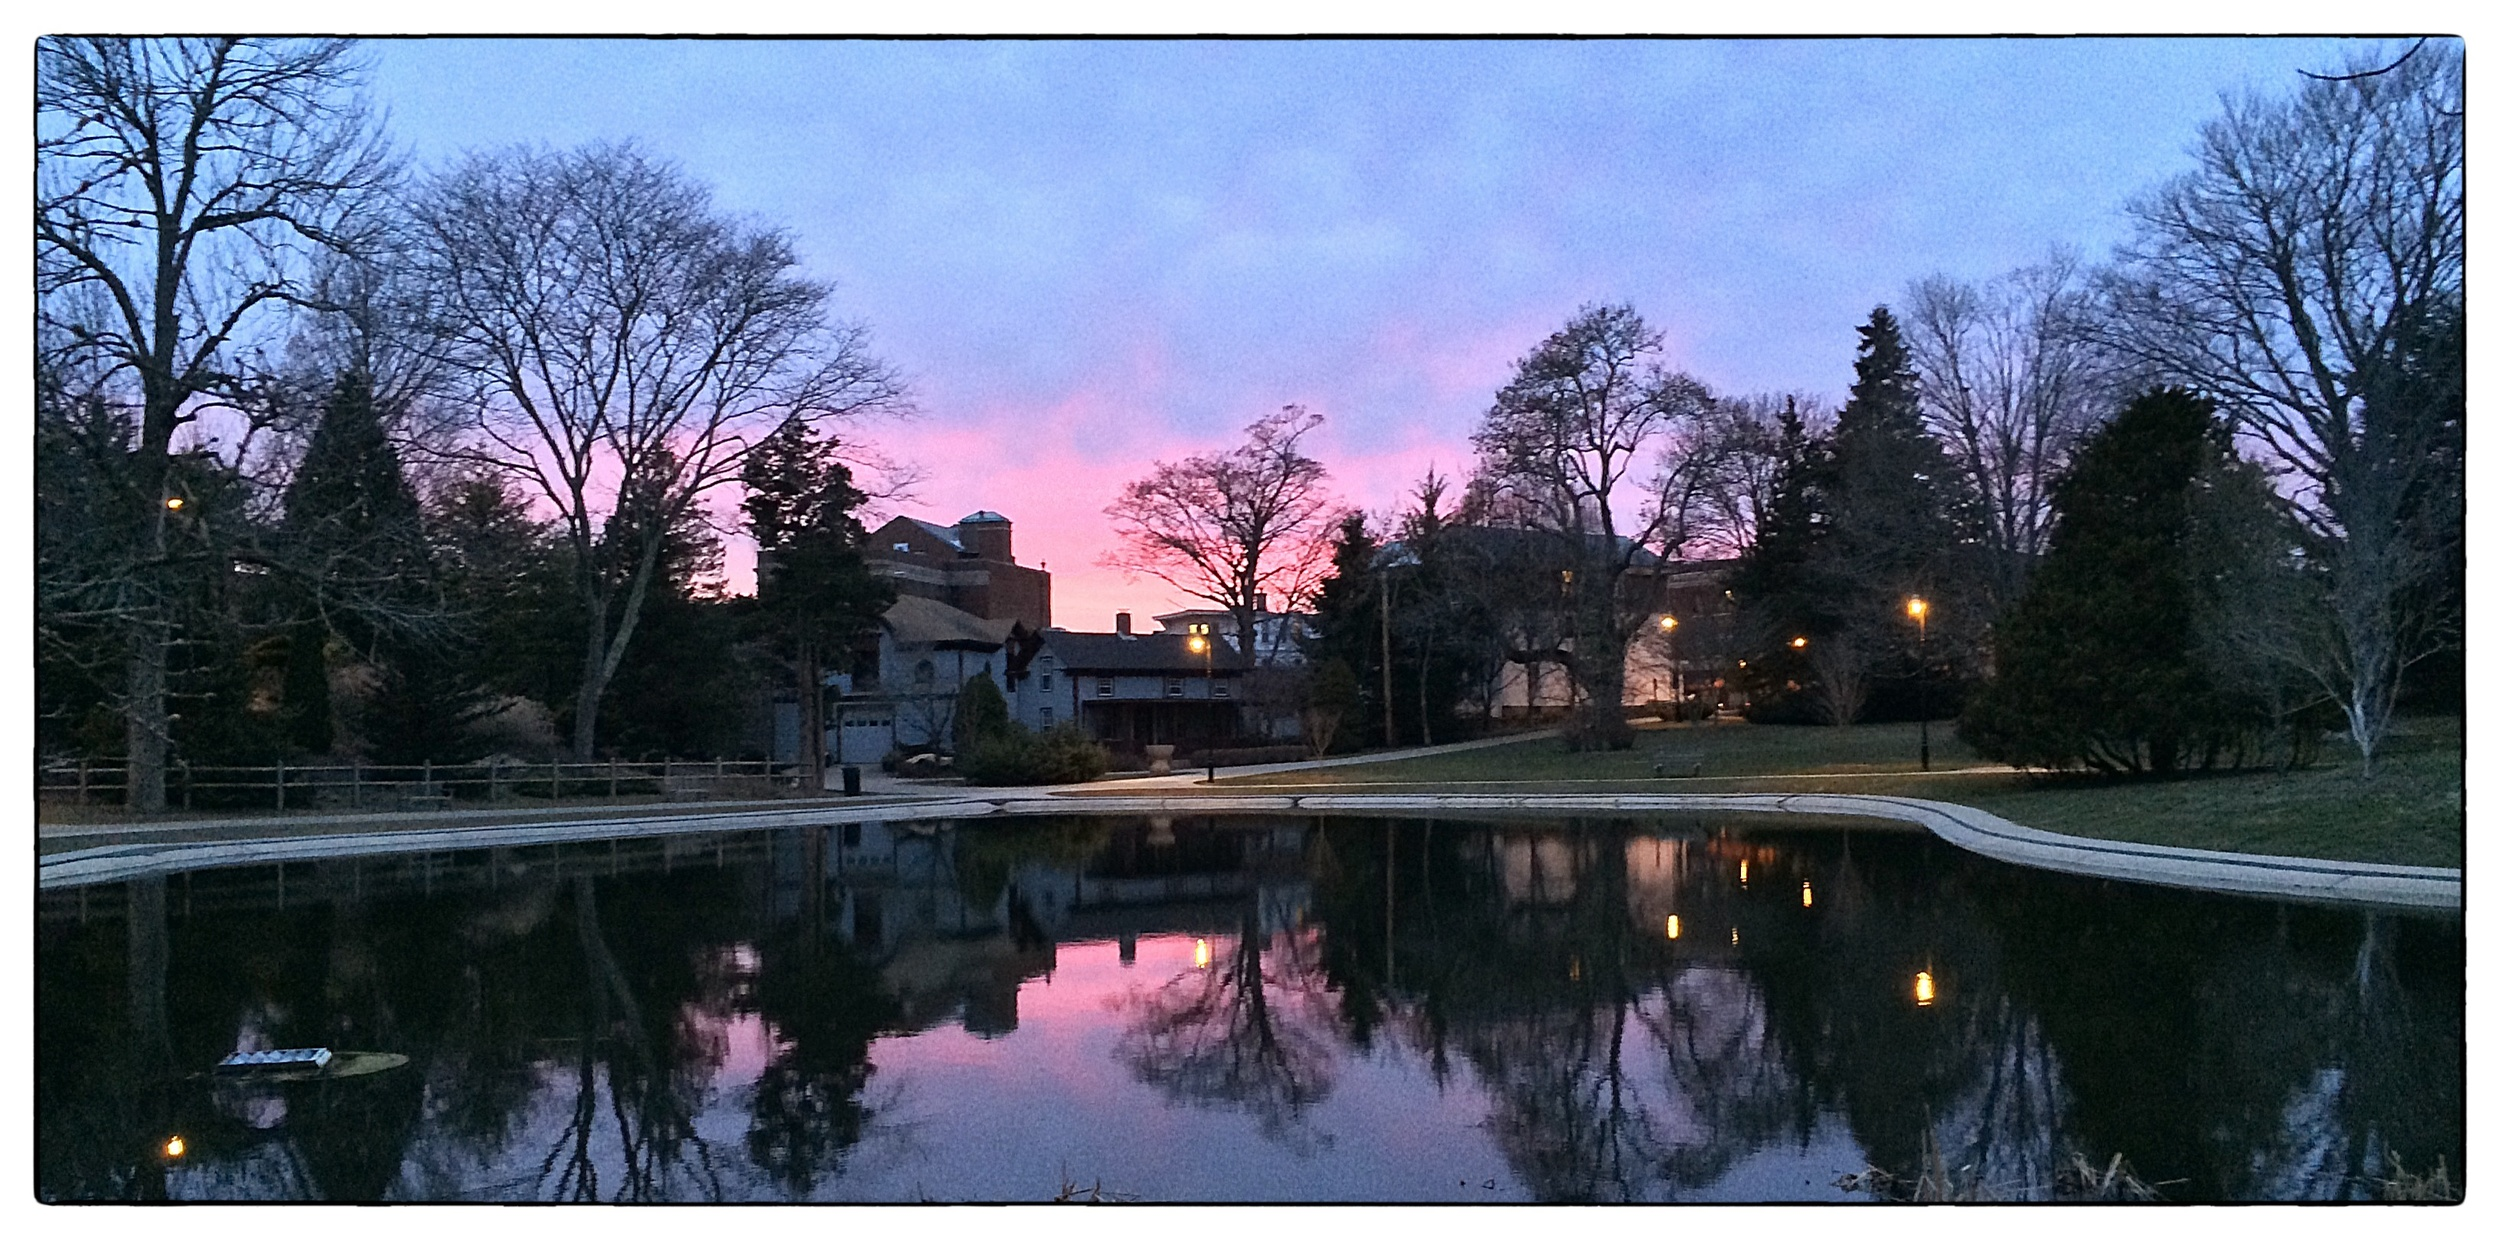 Sunset over pond in  Wilcox Park,  Westerly, R.I., shot on April 1, 2014.